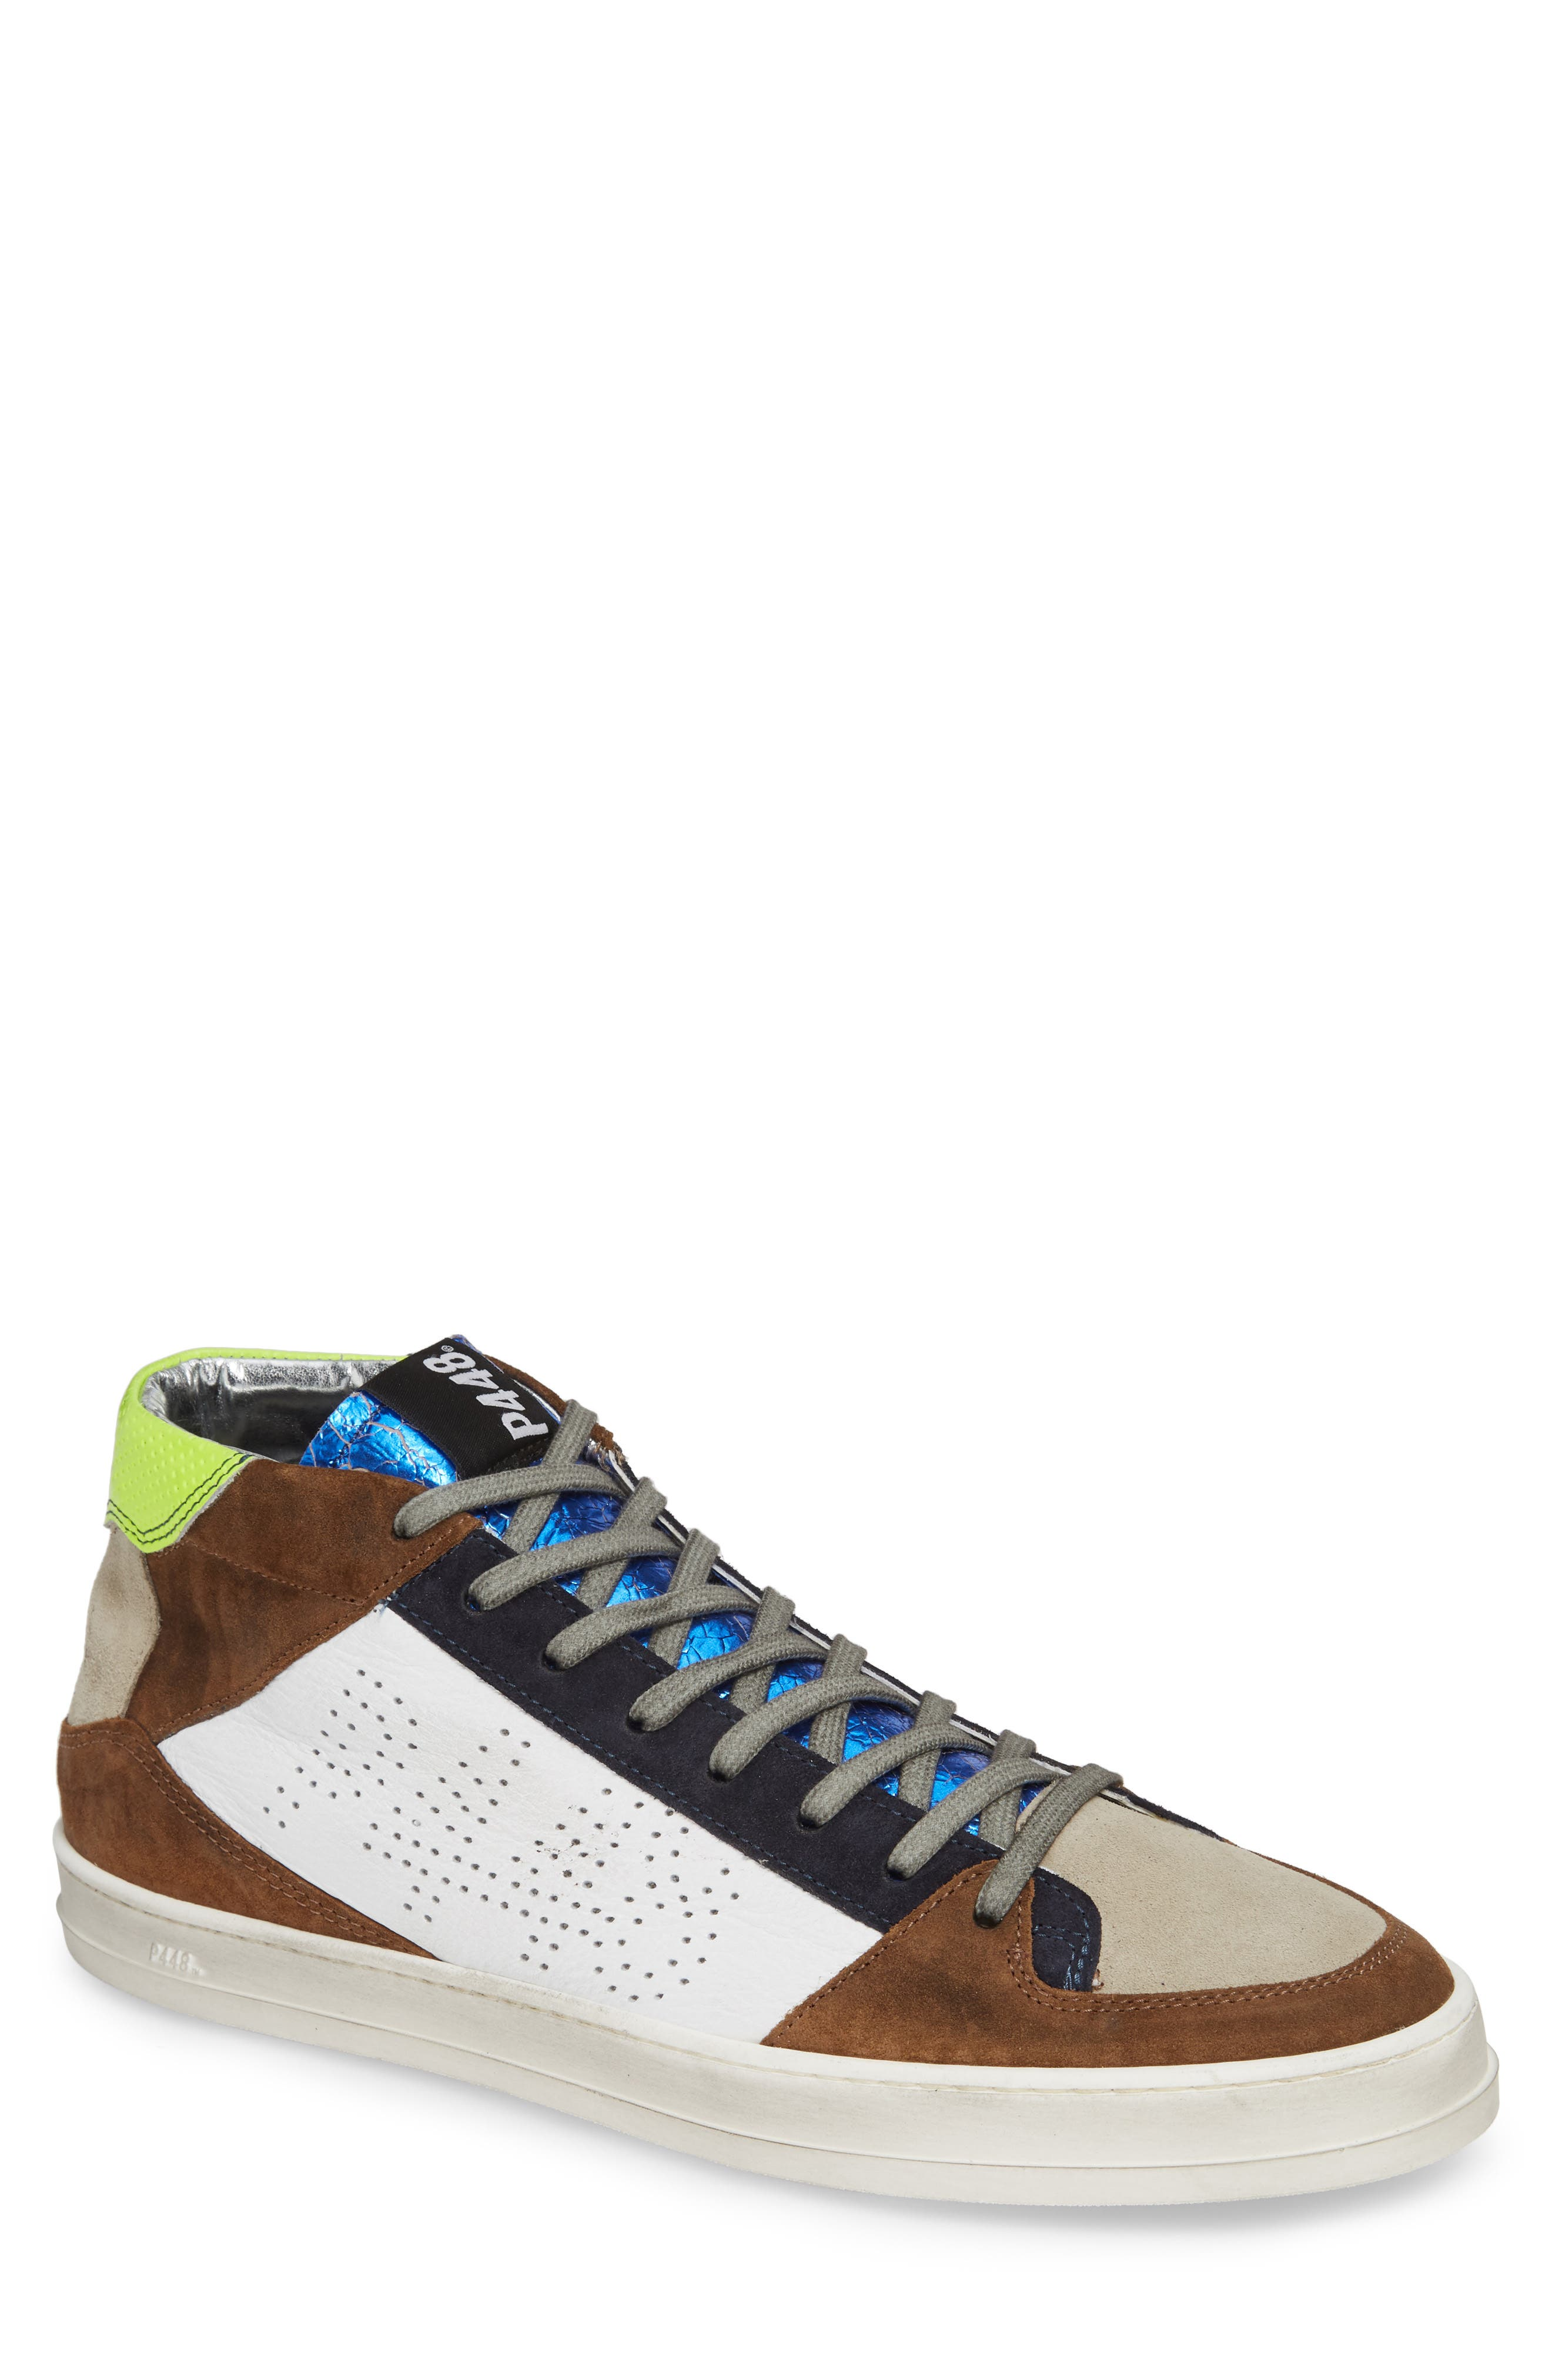 A8Queens Mid Top Sneaker,                             Main thumbnail 1, color,                             YELLOW